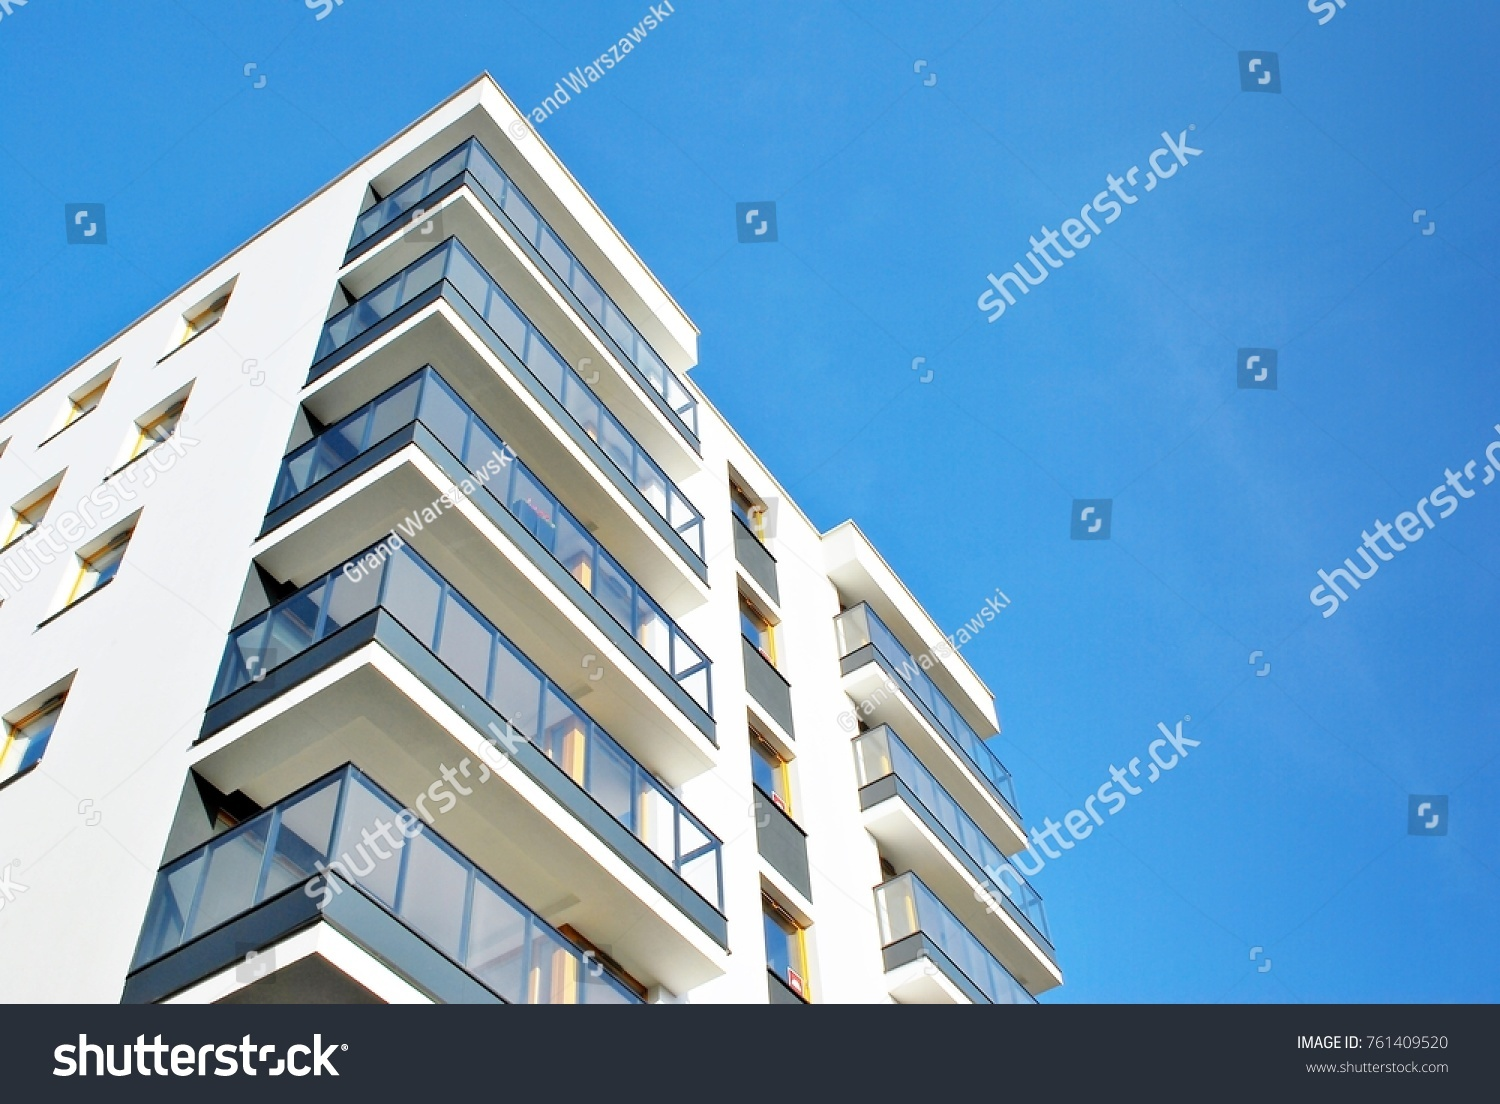 Modern apartment buildings on a sunny day with a blue sky. Facade of a modern apartment building #761409520